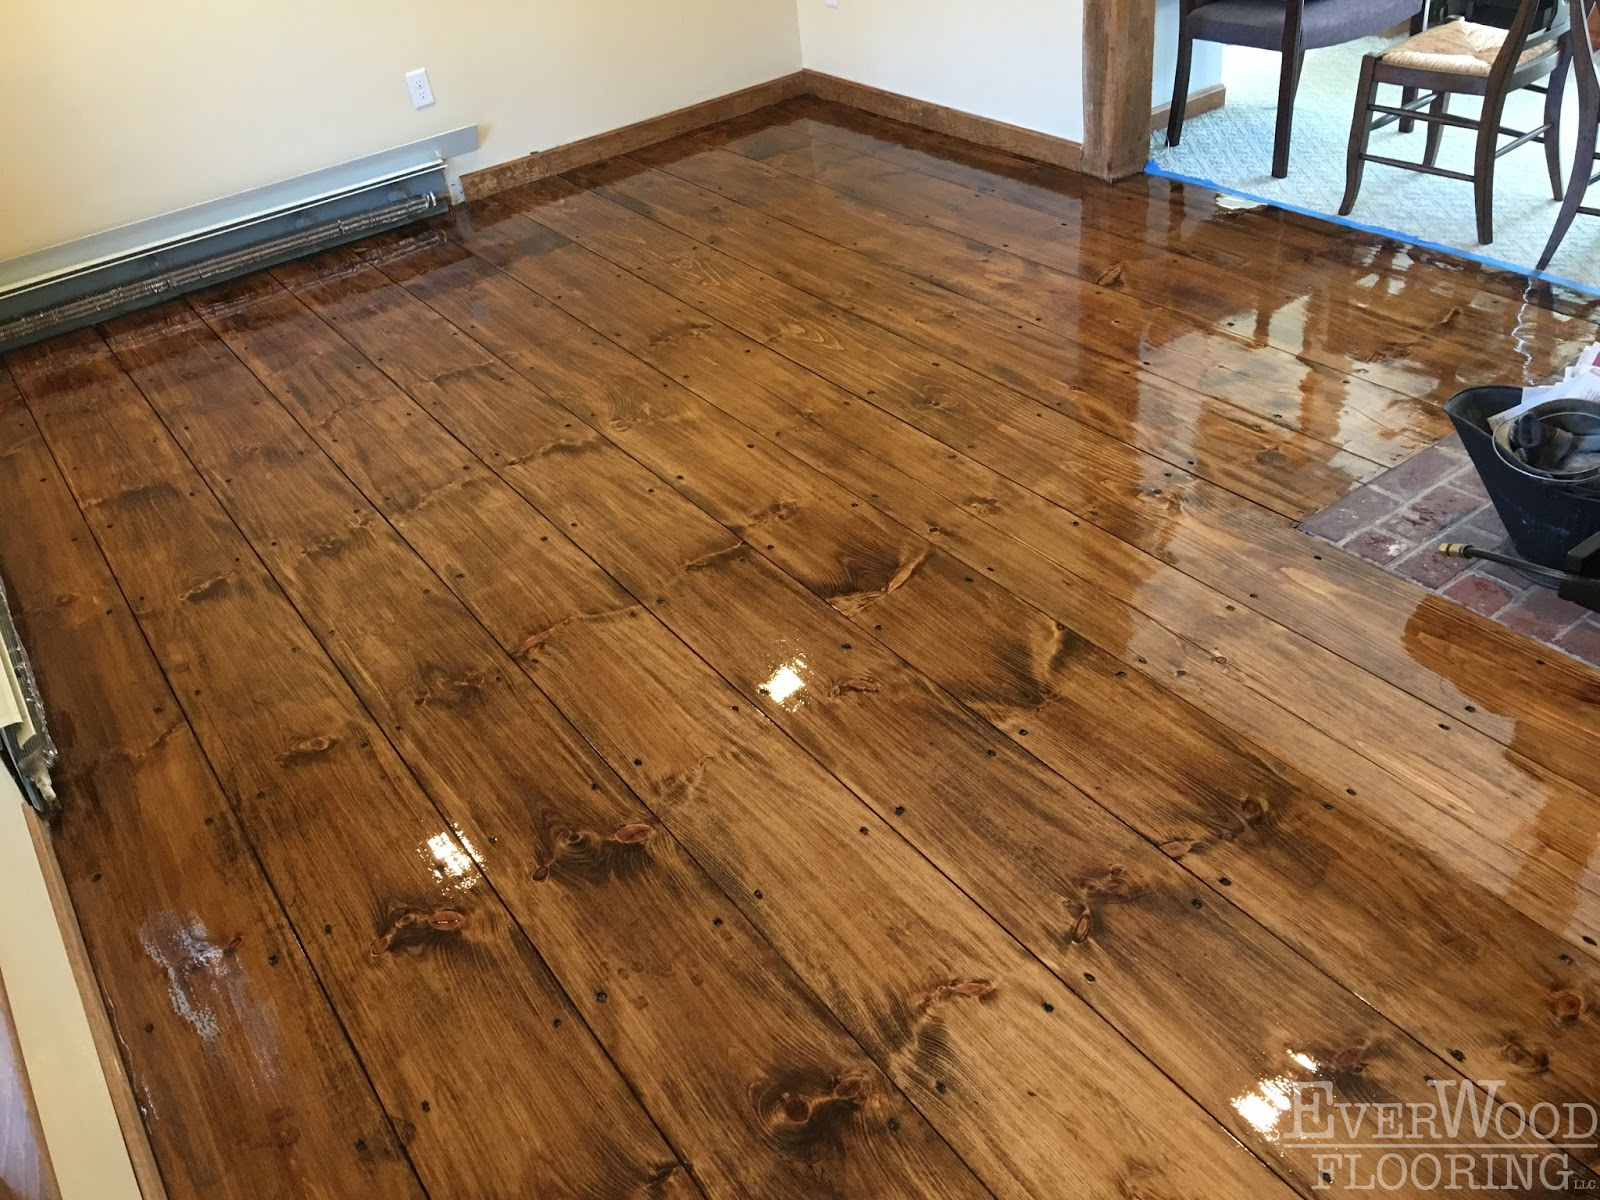 EverWood Flooring Project Profiles: Wide-Plank Pine Stain ...